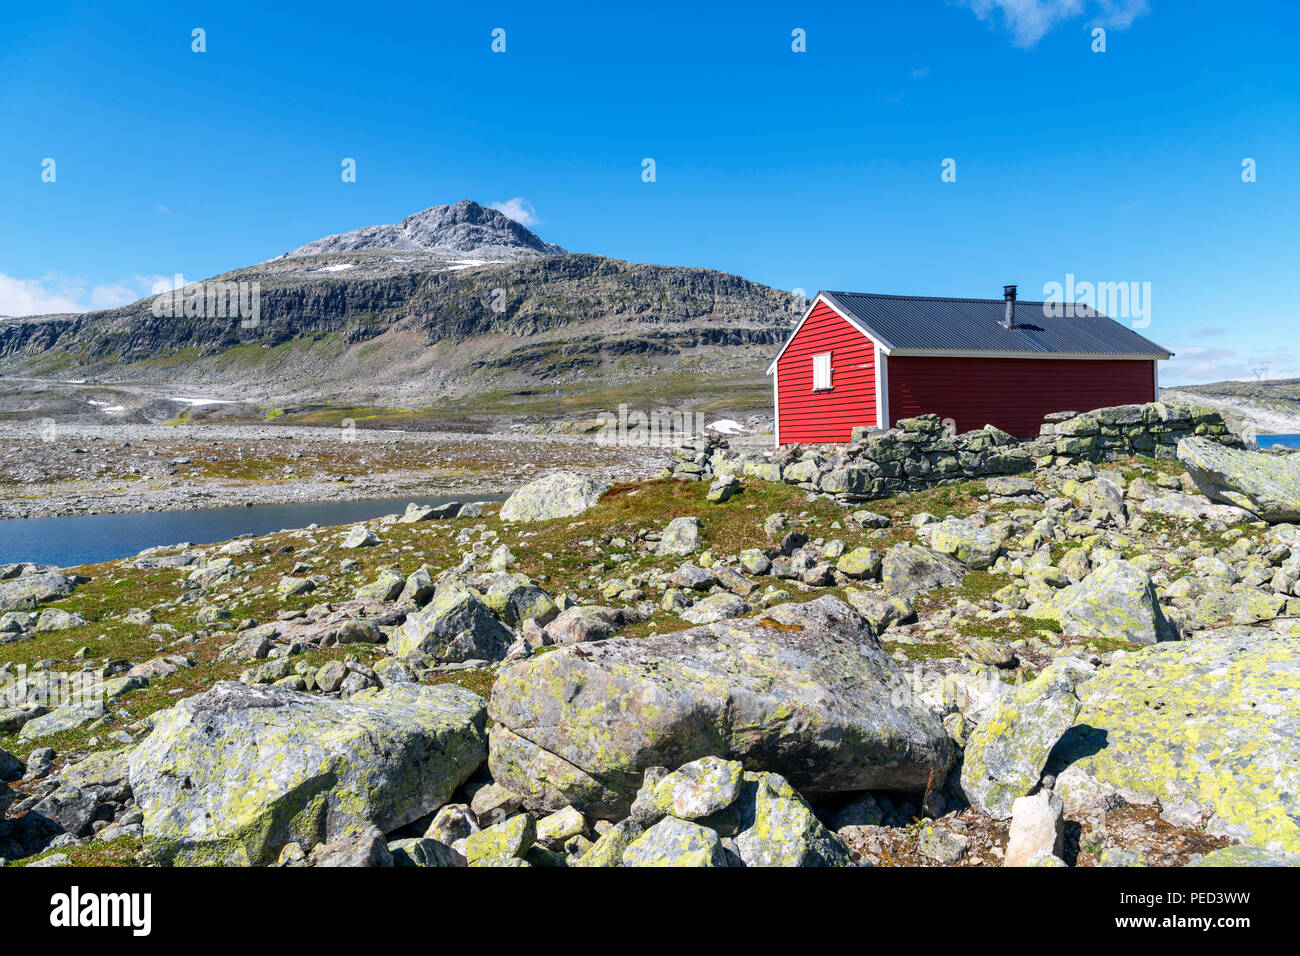 Remote hut by the side of the high altitude Aurlandsfjellet road (Fylkesvei 243) between Aurland and Lærdalsøyri, Sogn og Fjordane, Norway - Stock Image